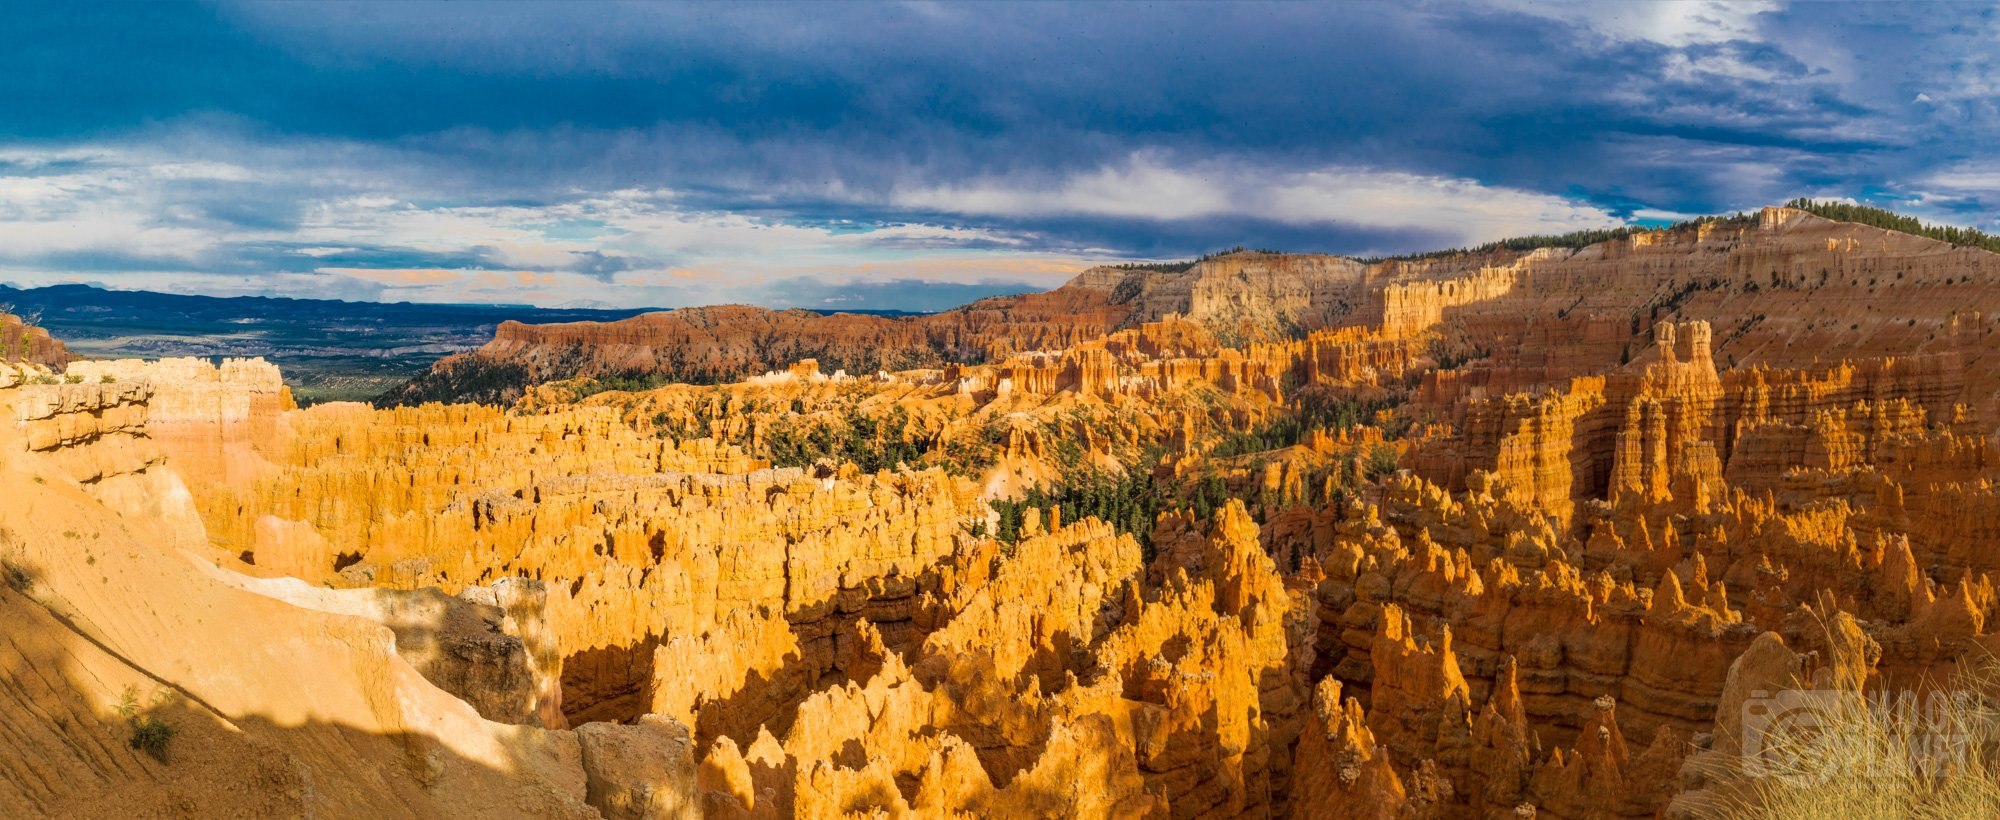 Bryce Canyon National Park sunset storm, USA